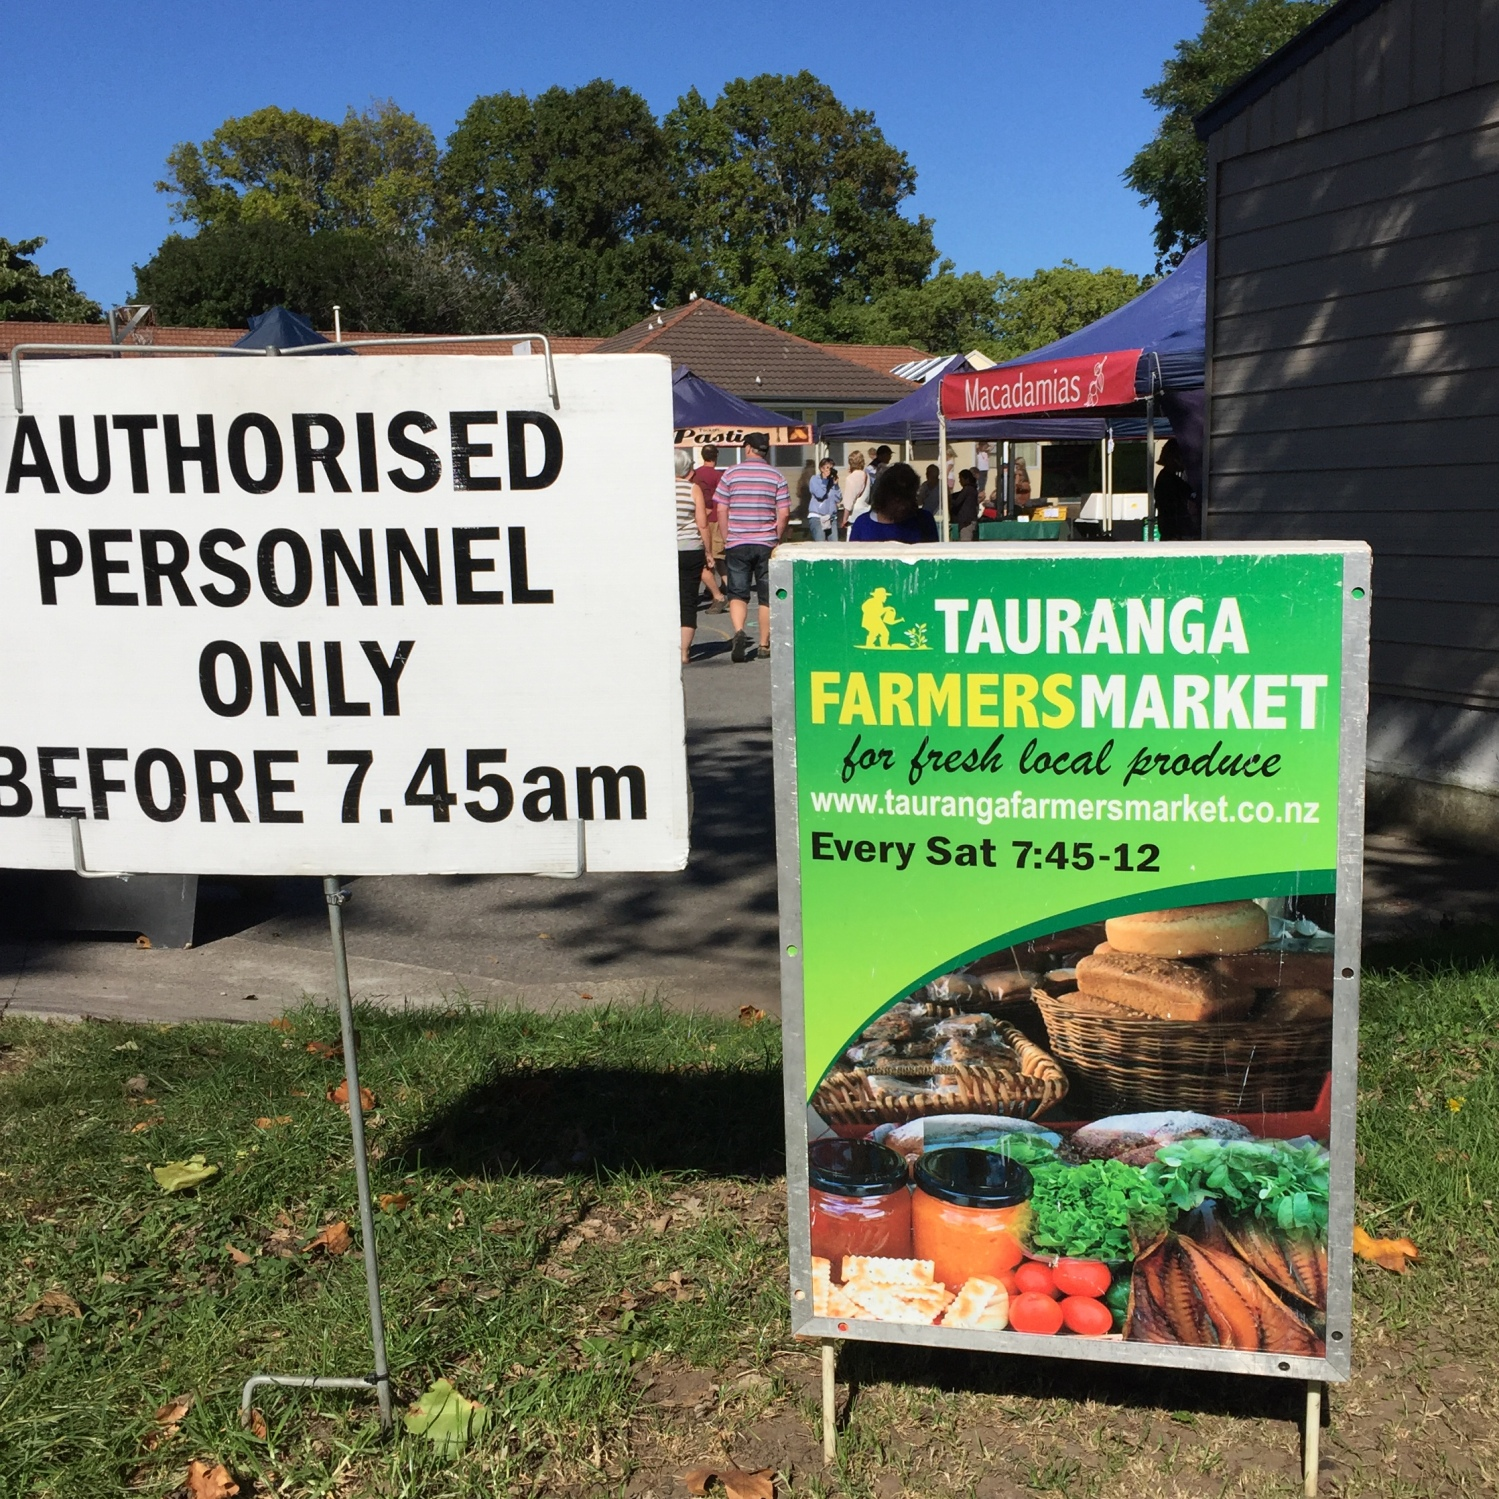 Authorised people only before 7:45am